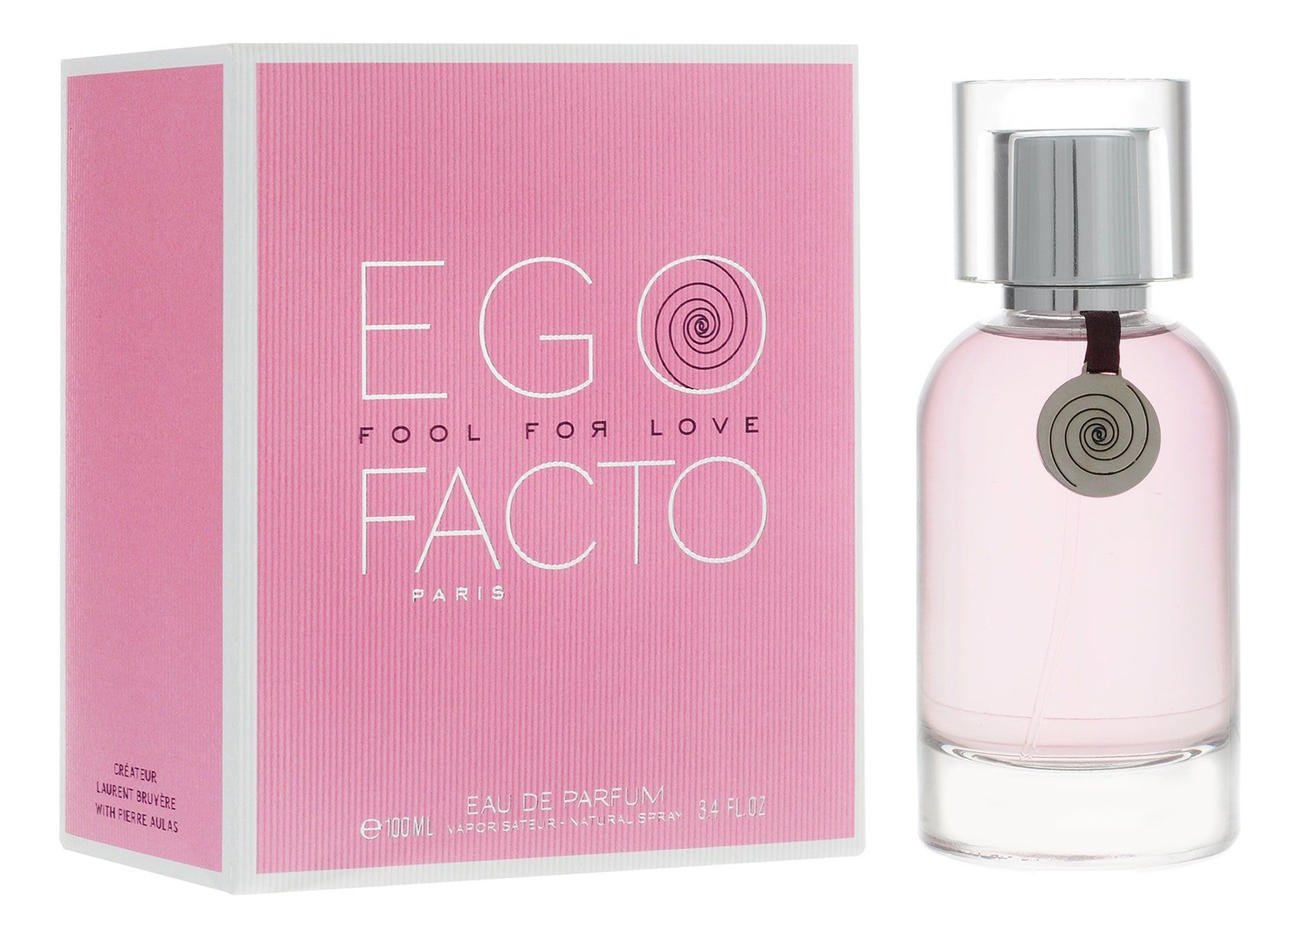 Ego Facto Fool For Love : парфюмерная вода 100мл